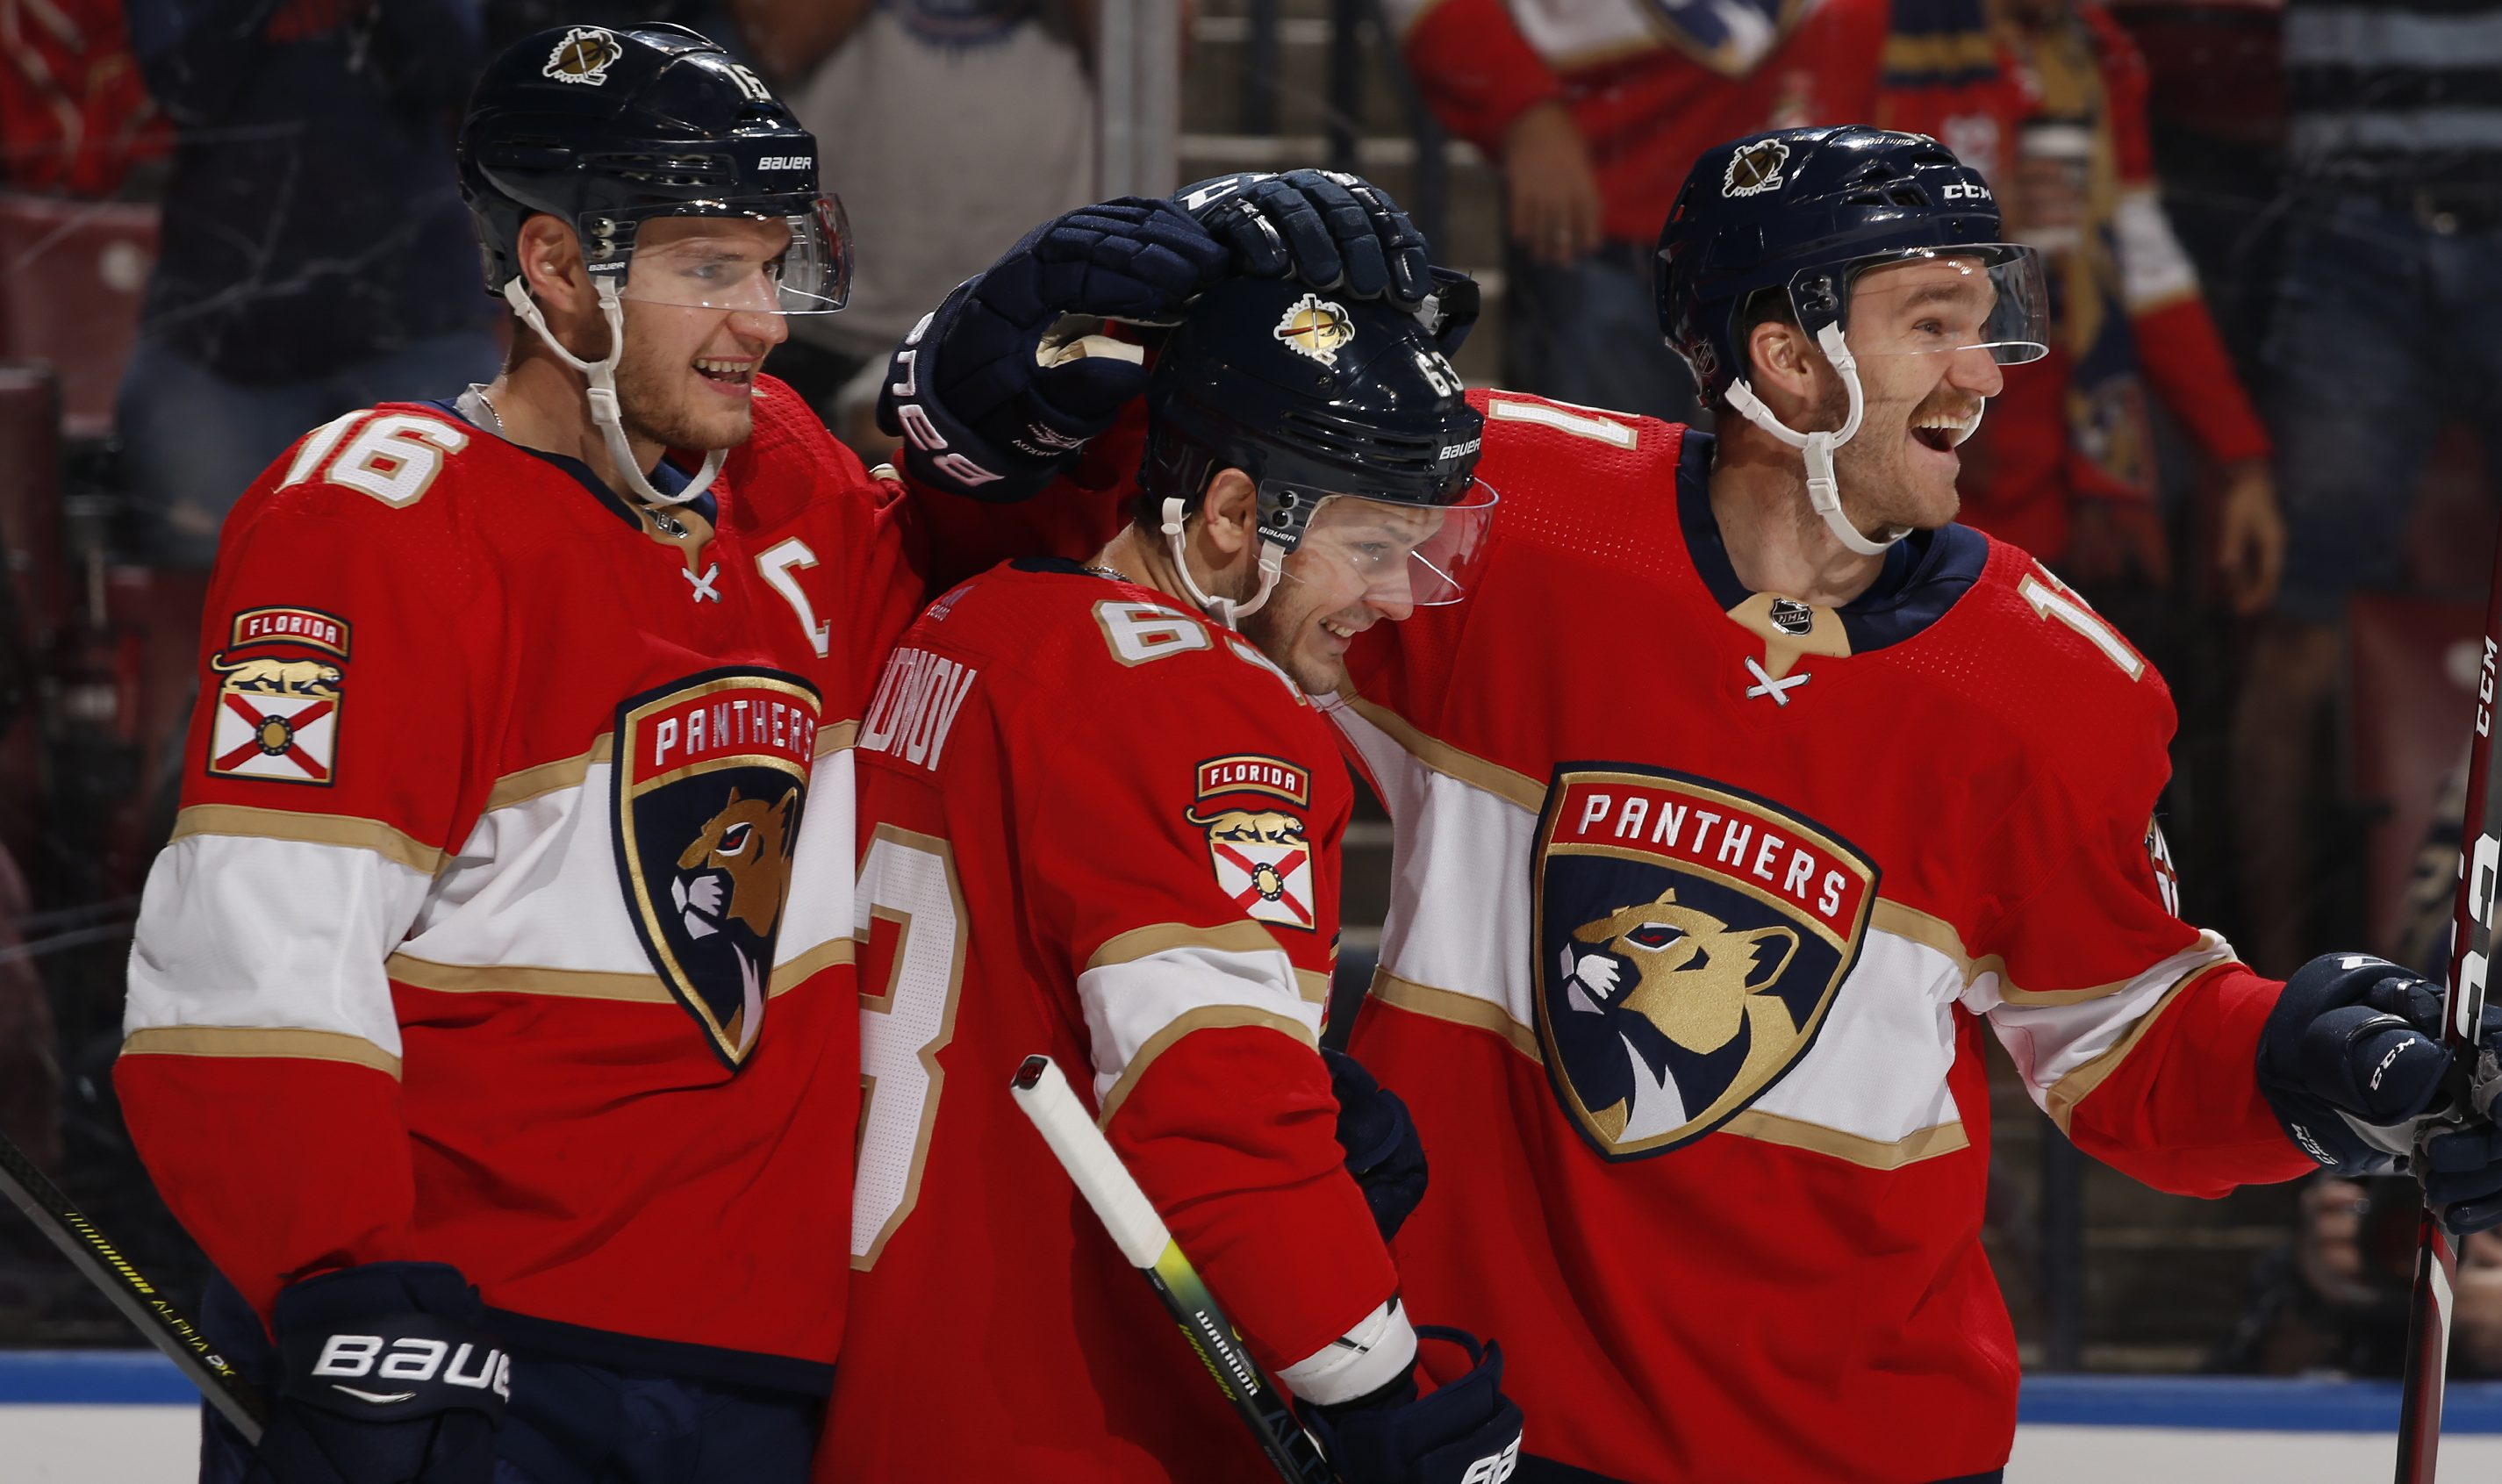 Looking at the long-term out look for the Florida Panthers